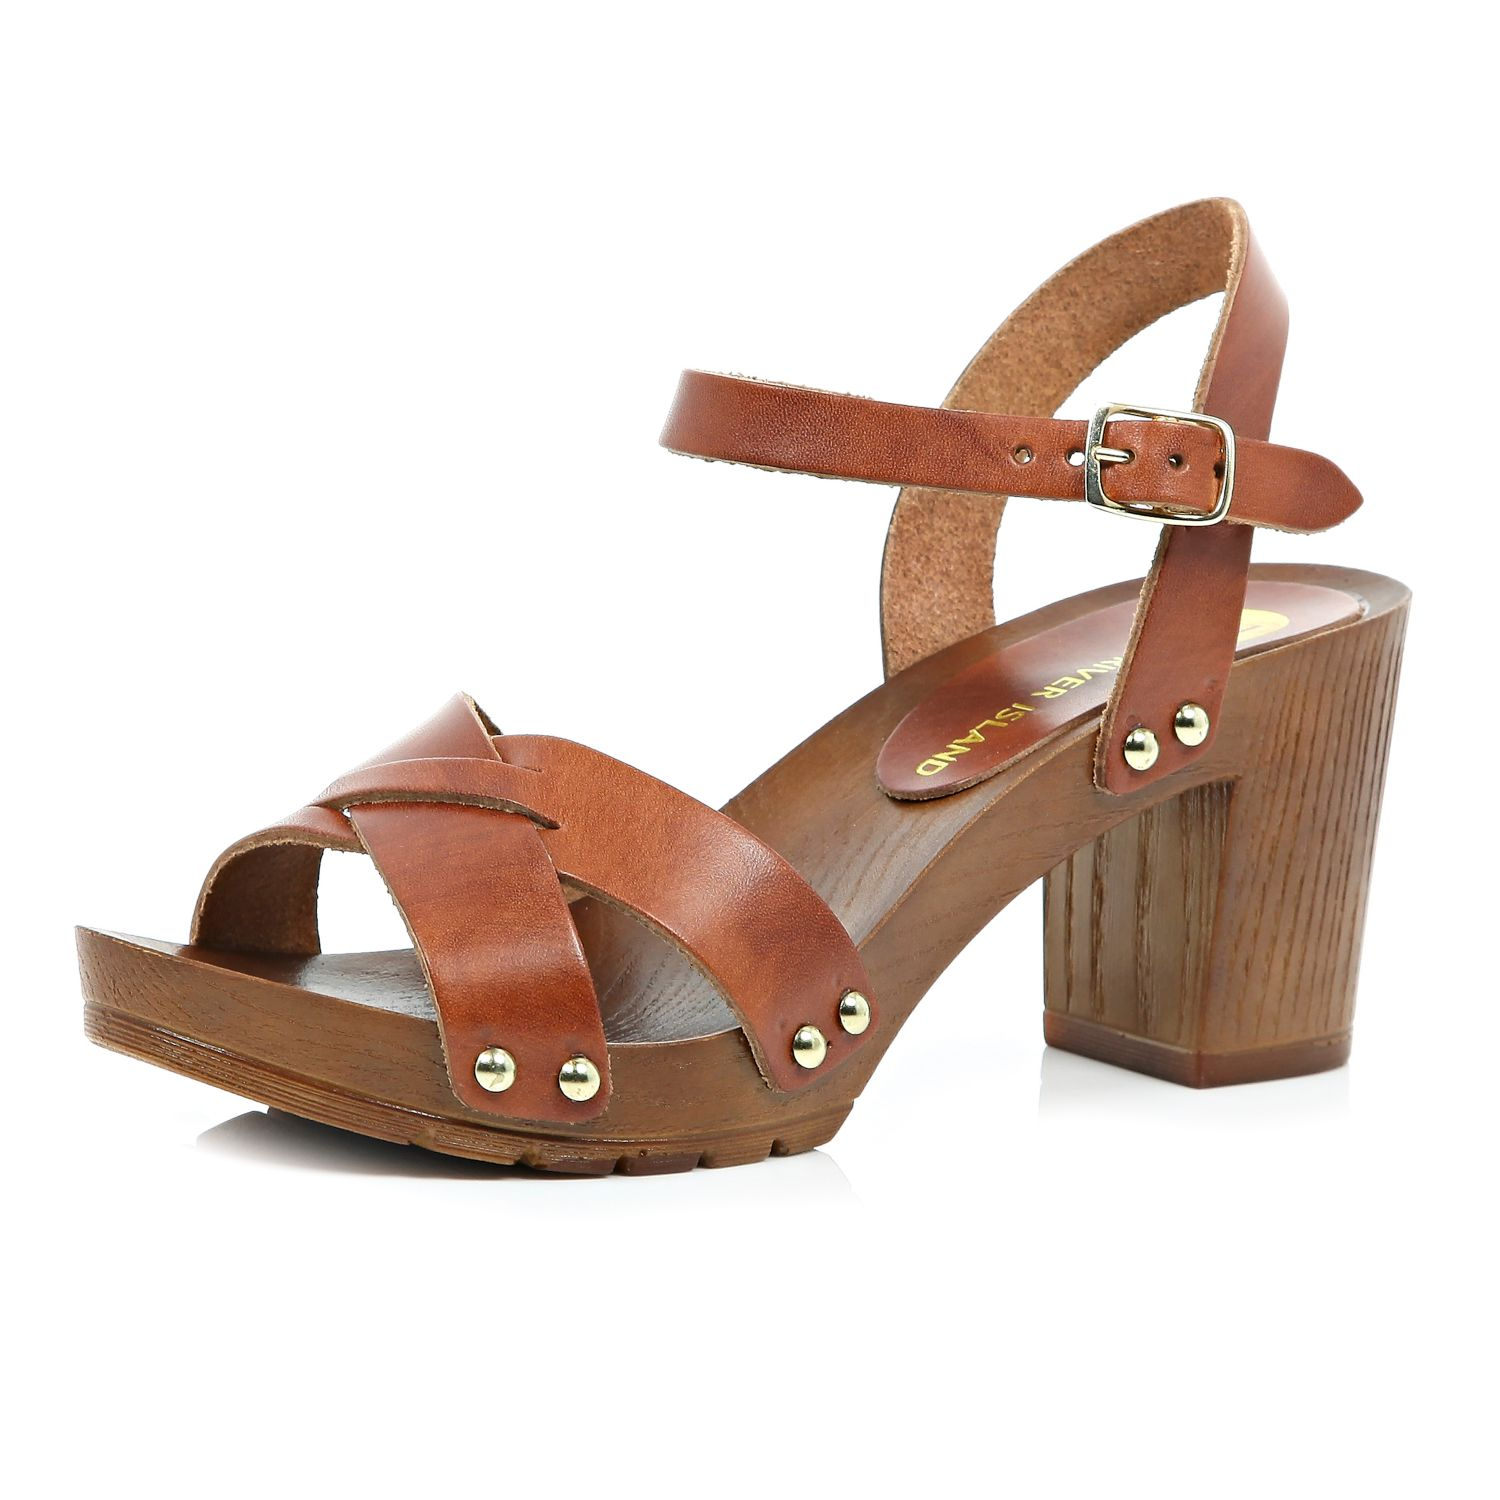 2e68884f37 River Island Brown Leather Wooden Heel Clog Sandals in Brown - Lyst